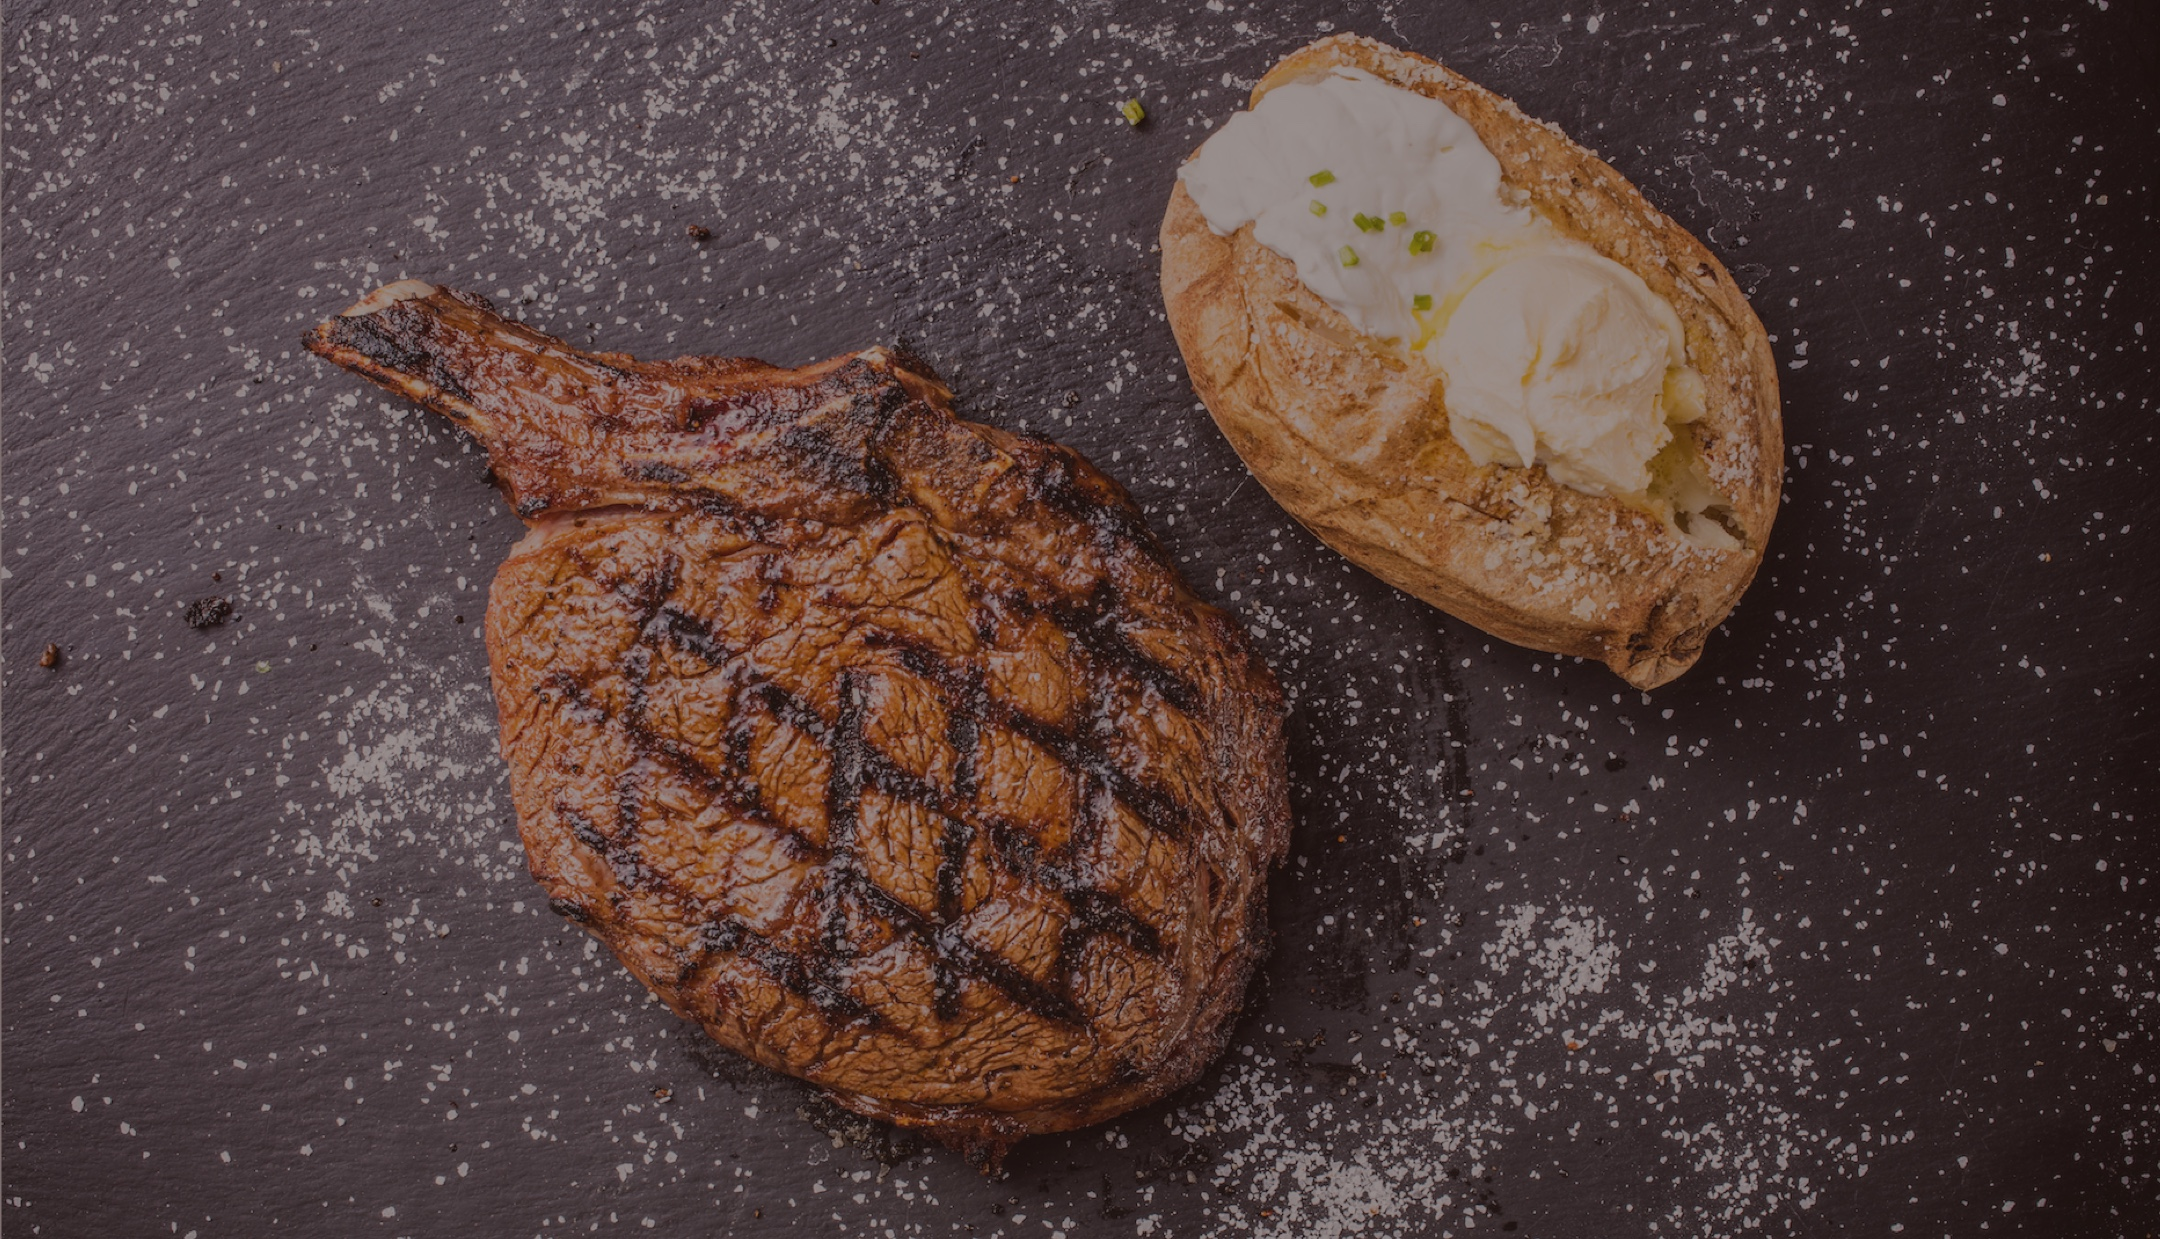 Bone-in Ribeye with Baked Potato